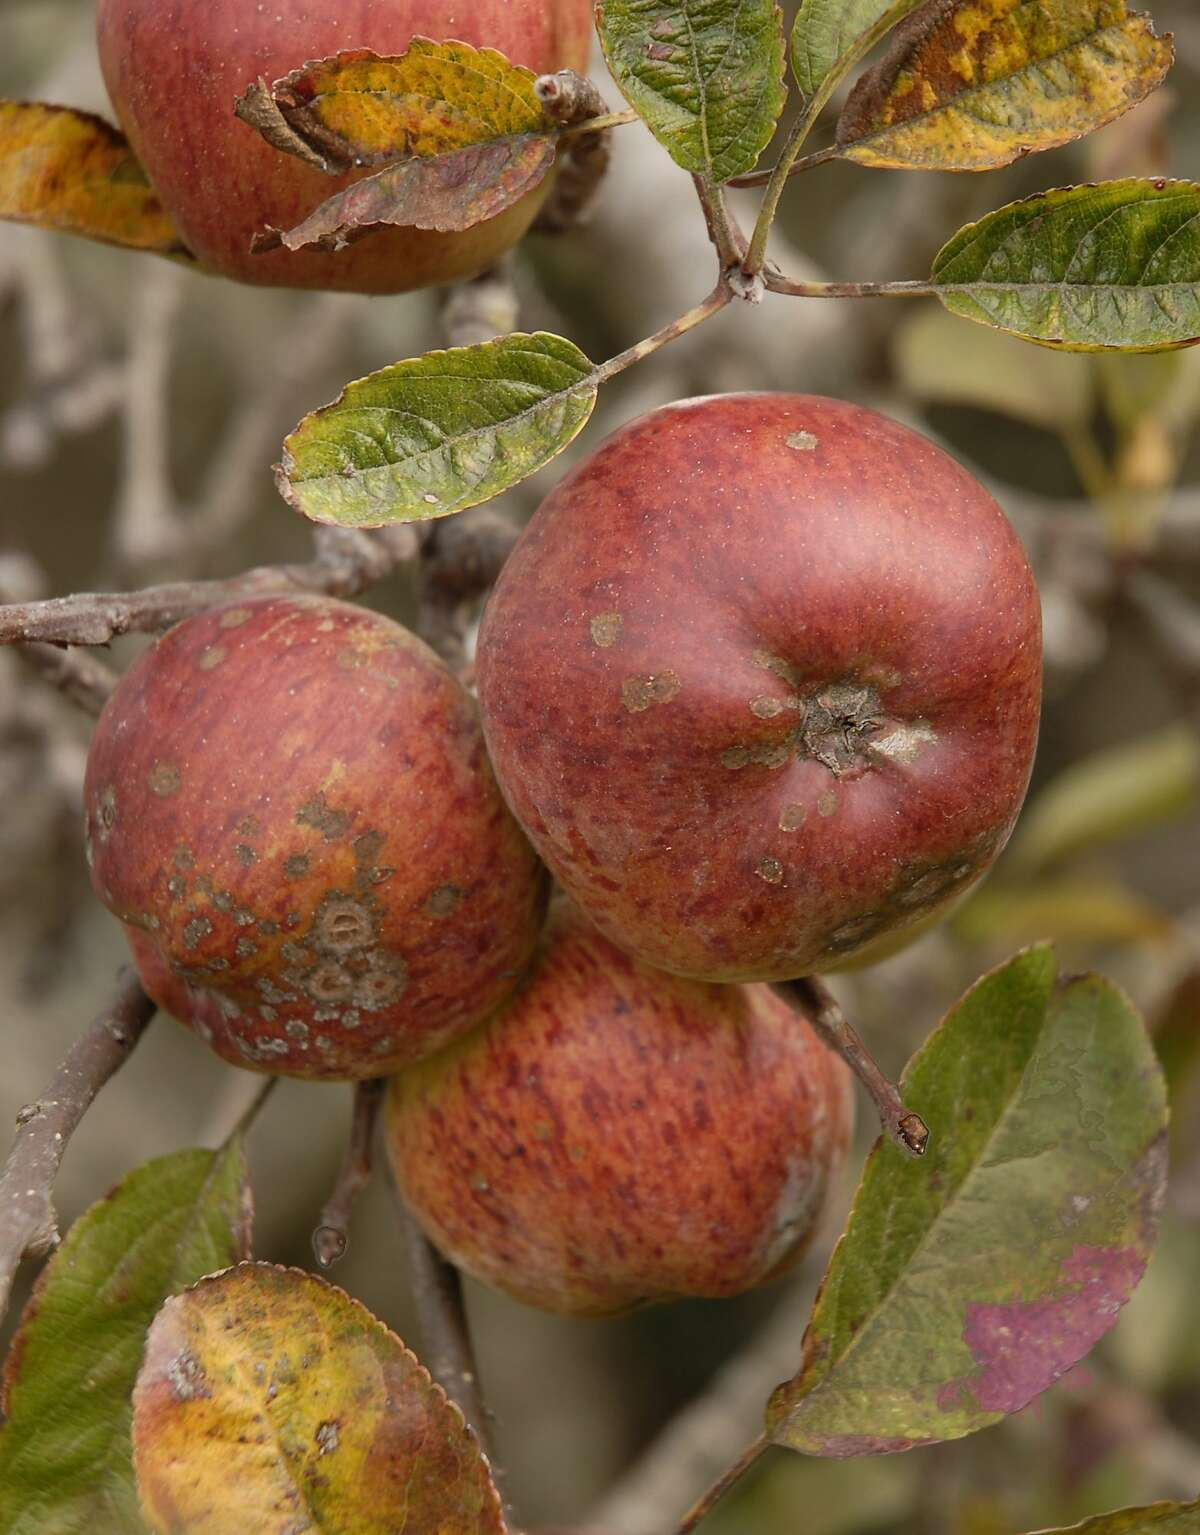 Apple Scab symptoms on fruit and leaves. Photo by Pam Peirce